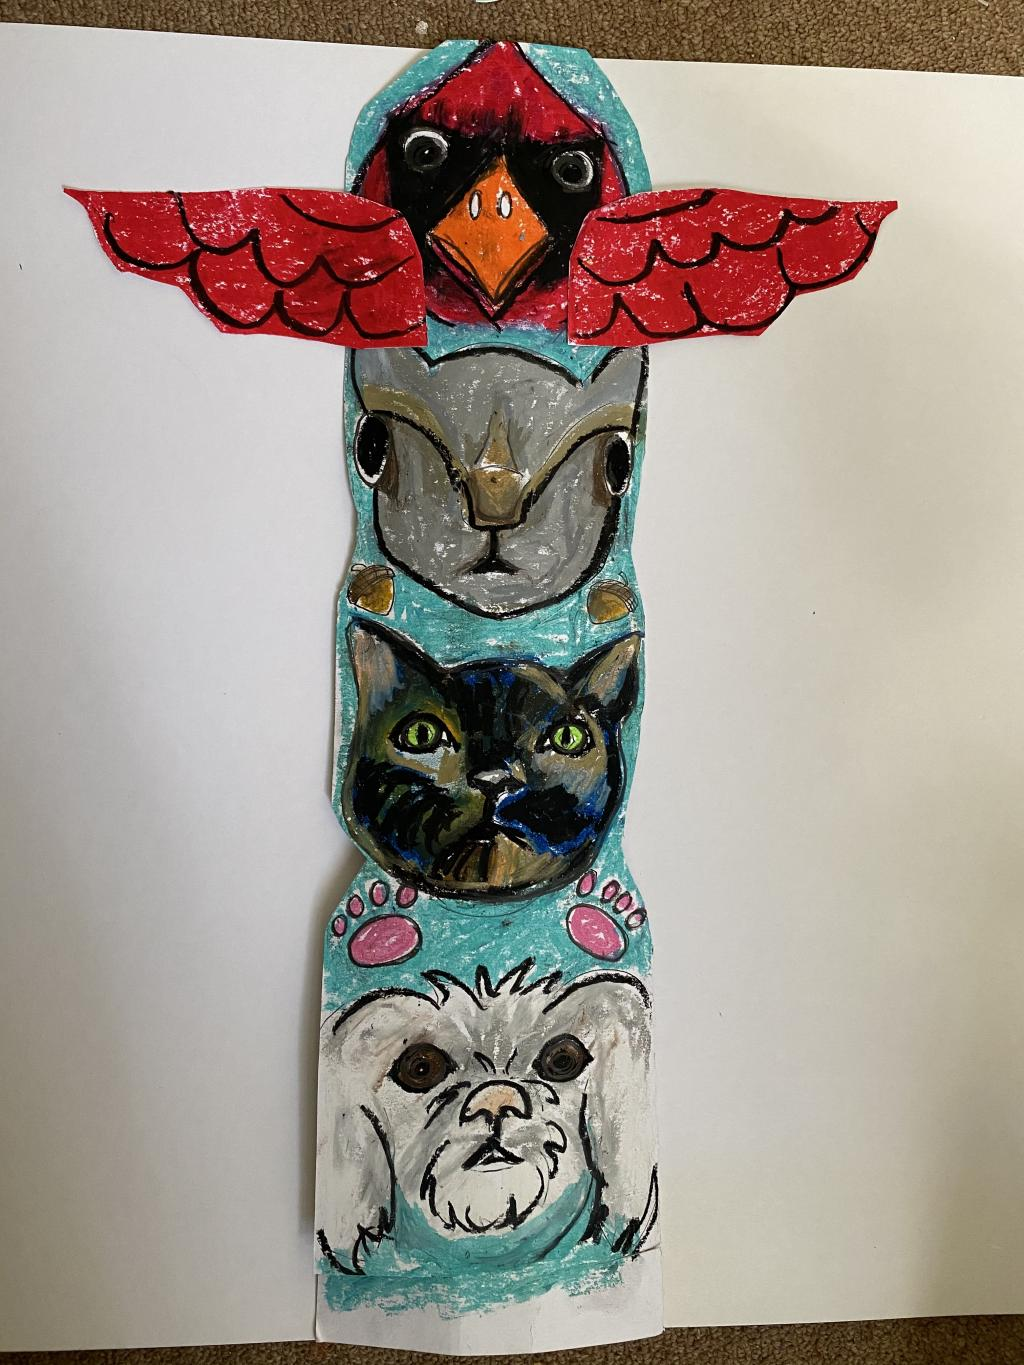 A totem pole drawn on paper featuring a cardinal, a rabbit, a cat and a dog from top to bottom.